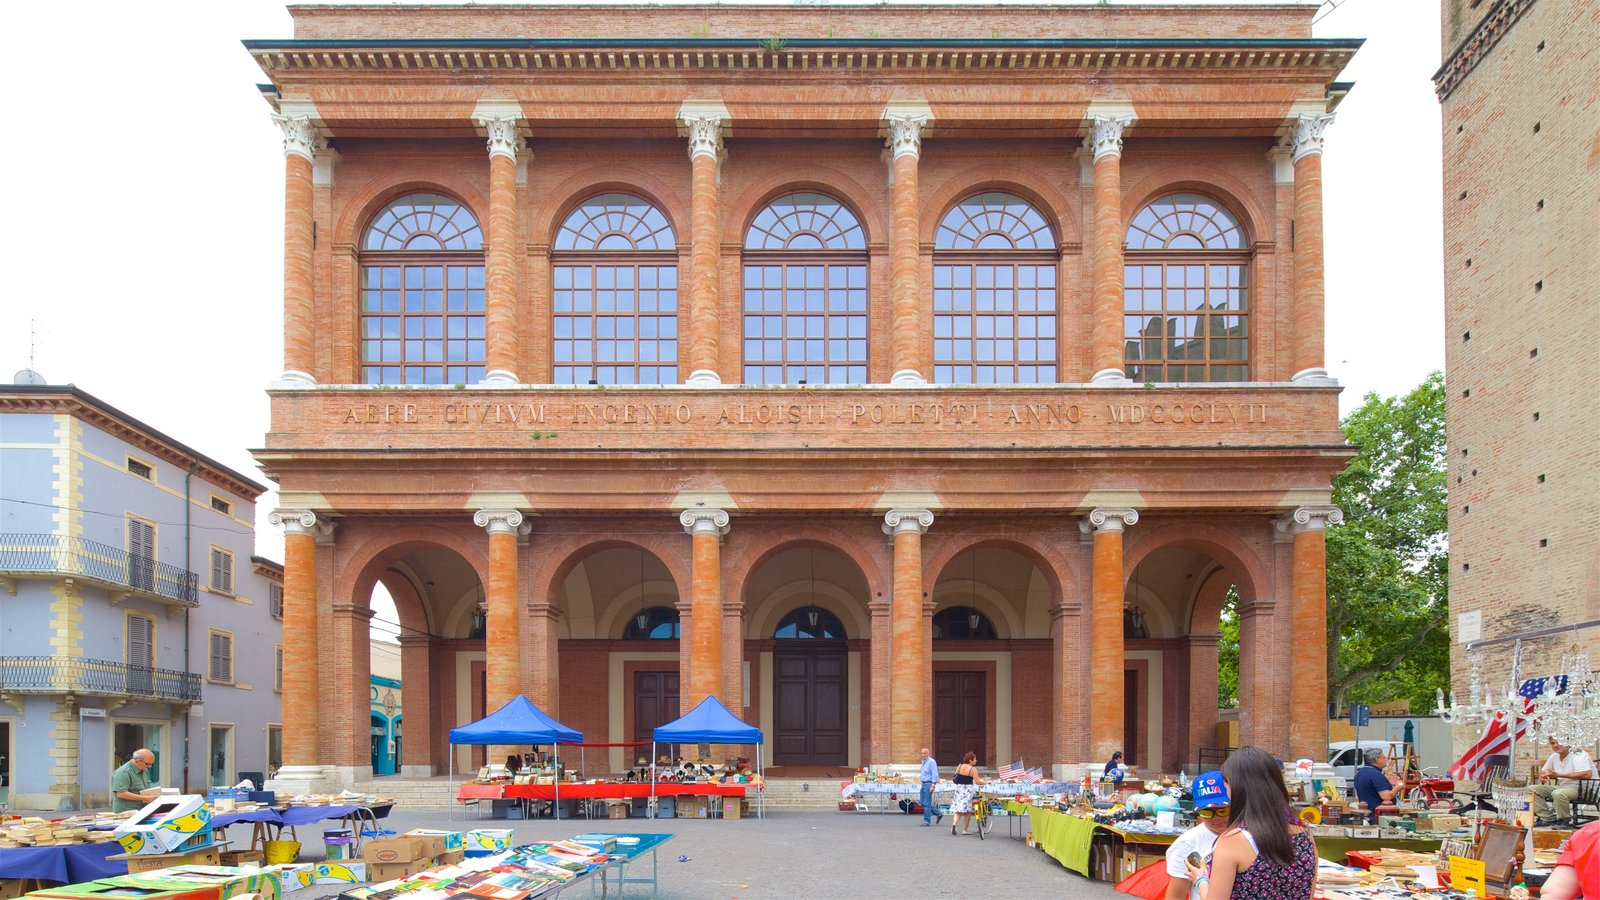 Piazza Cavour showing markets, heritage elements and street scenes